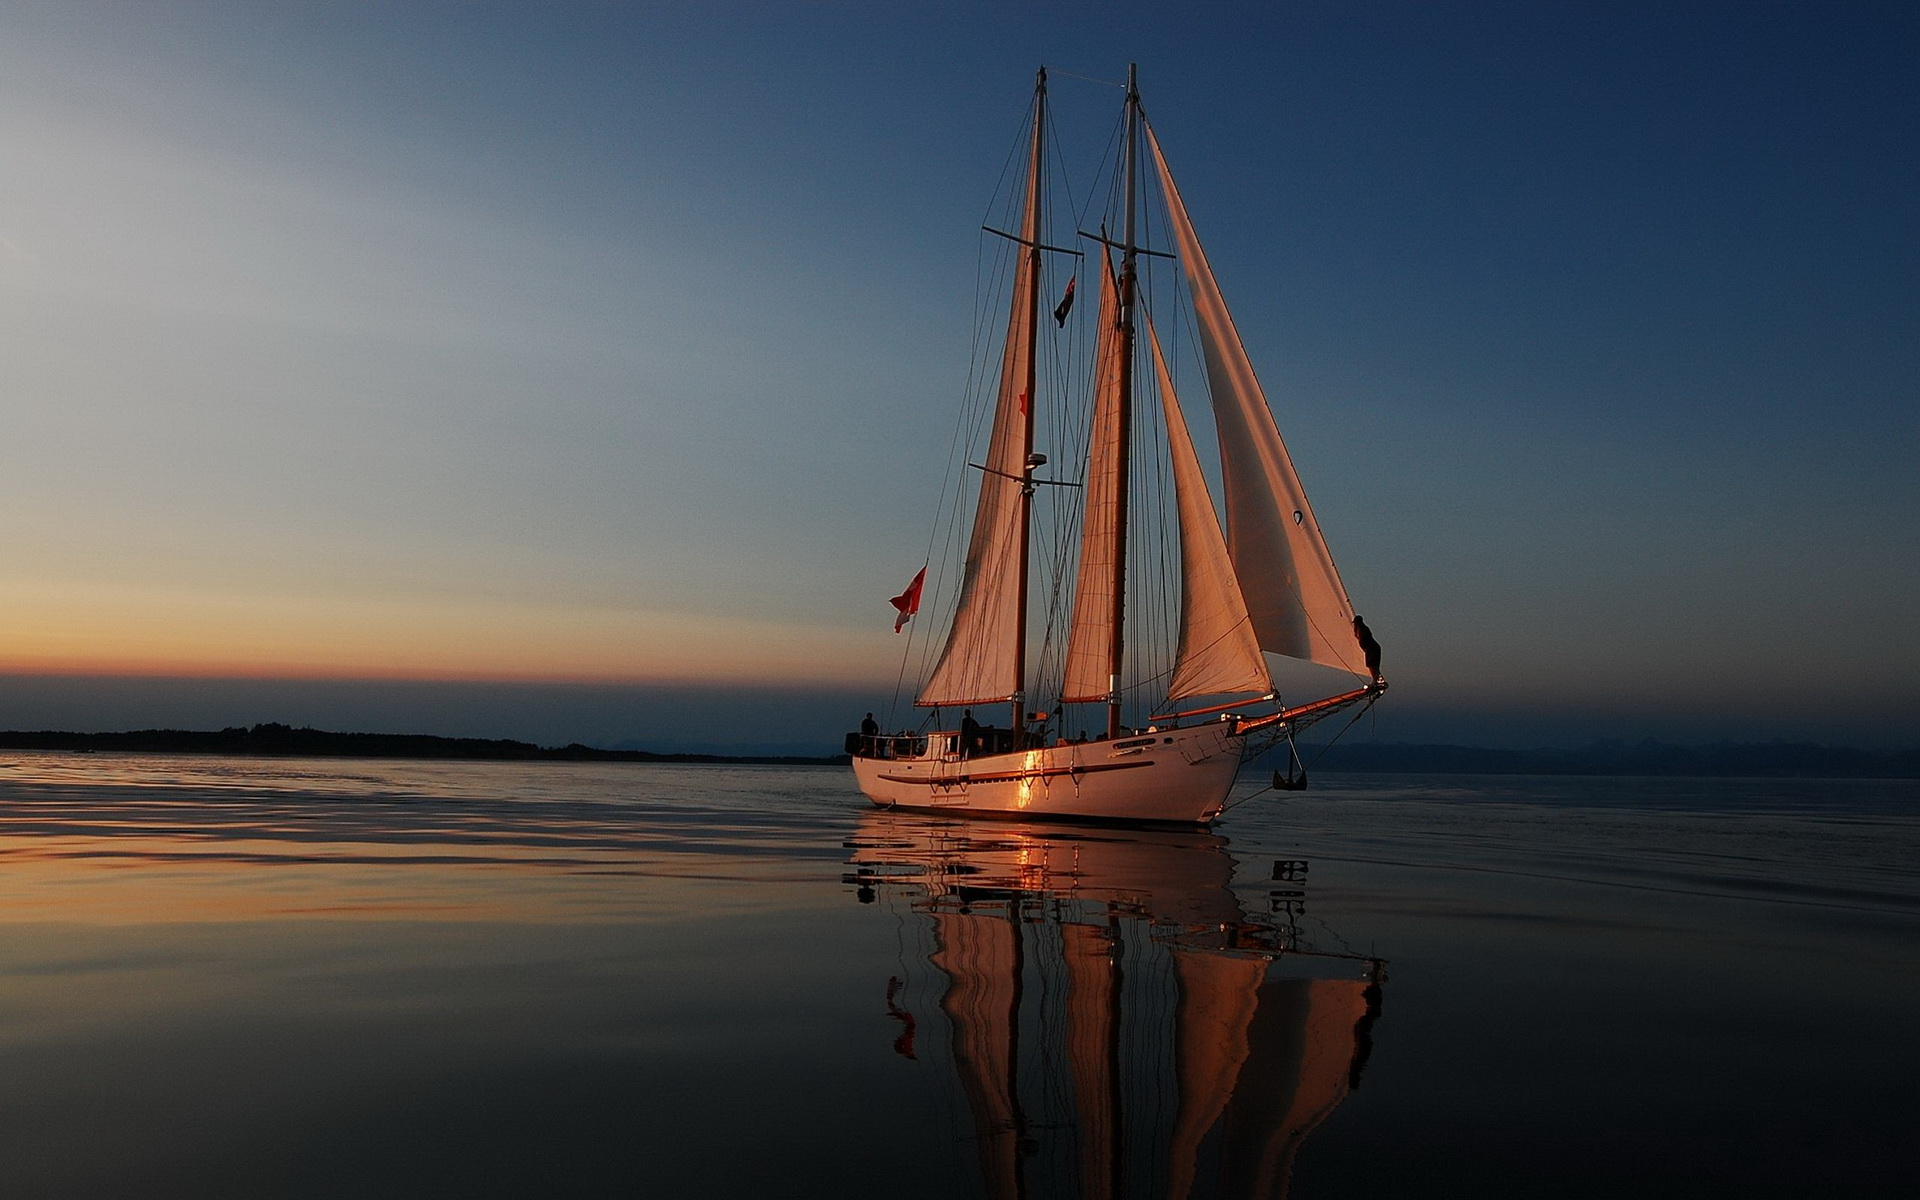 hungry for sailboat wallpaper - photo #17